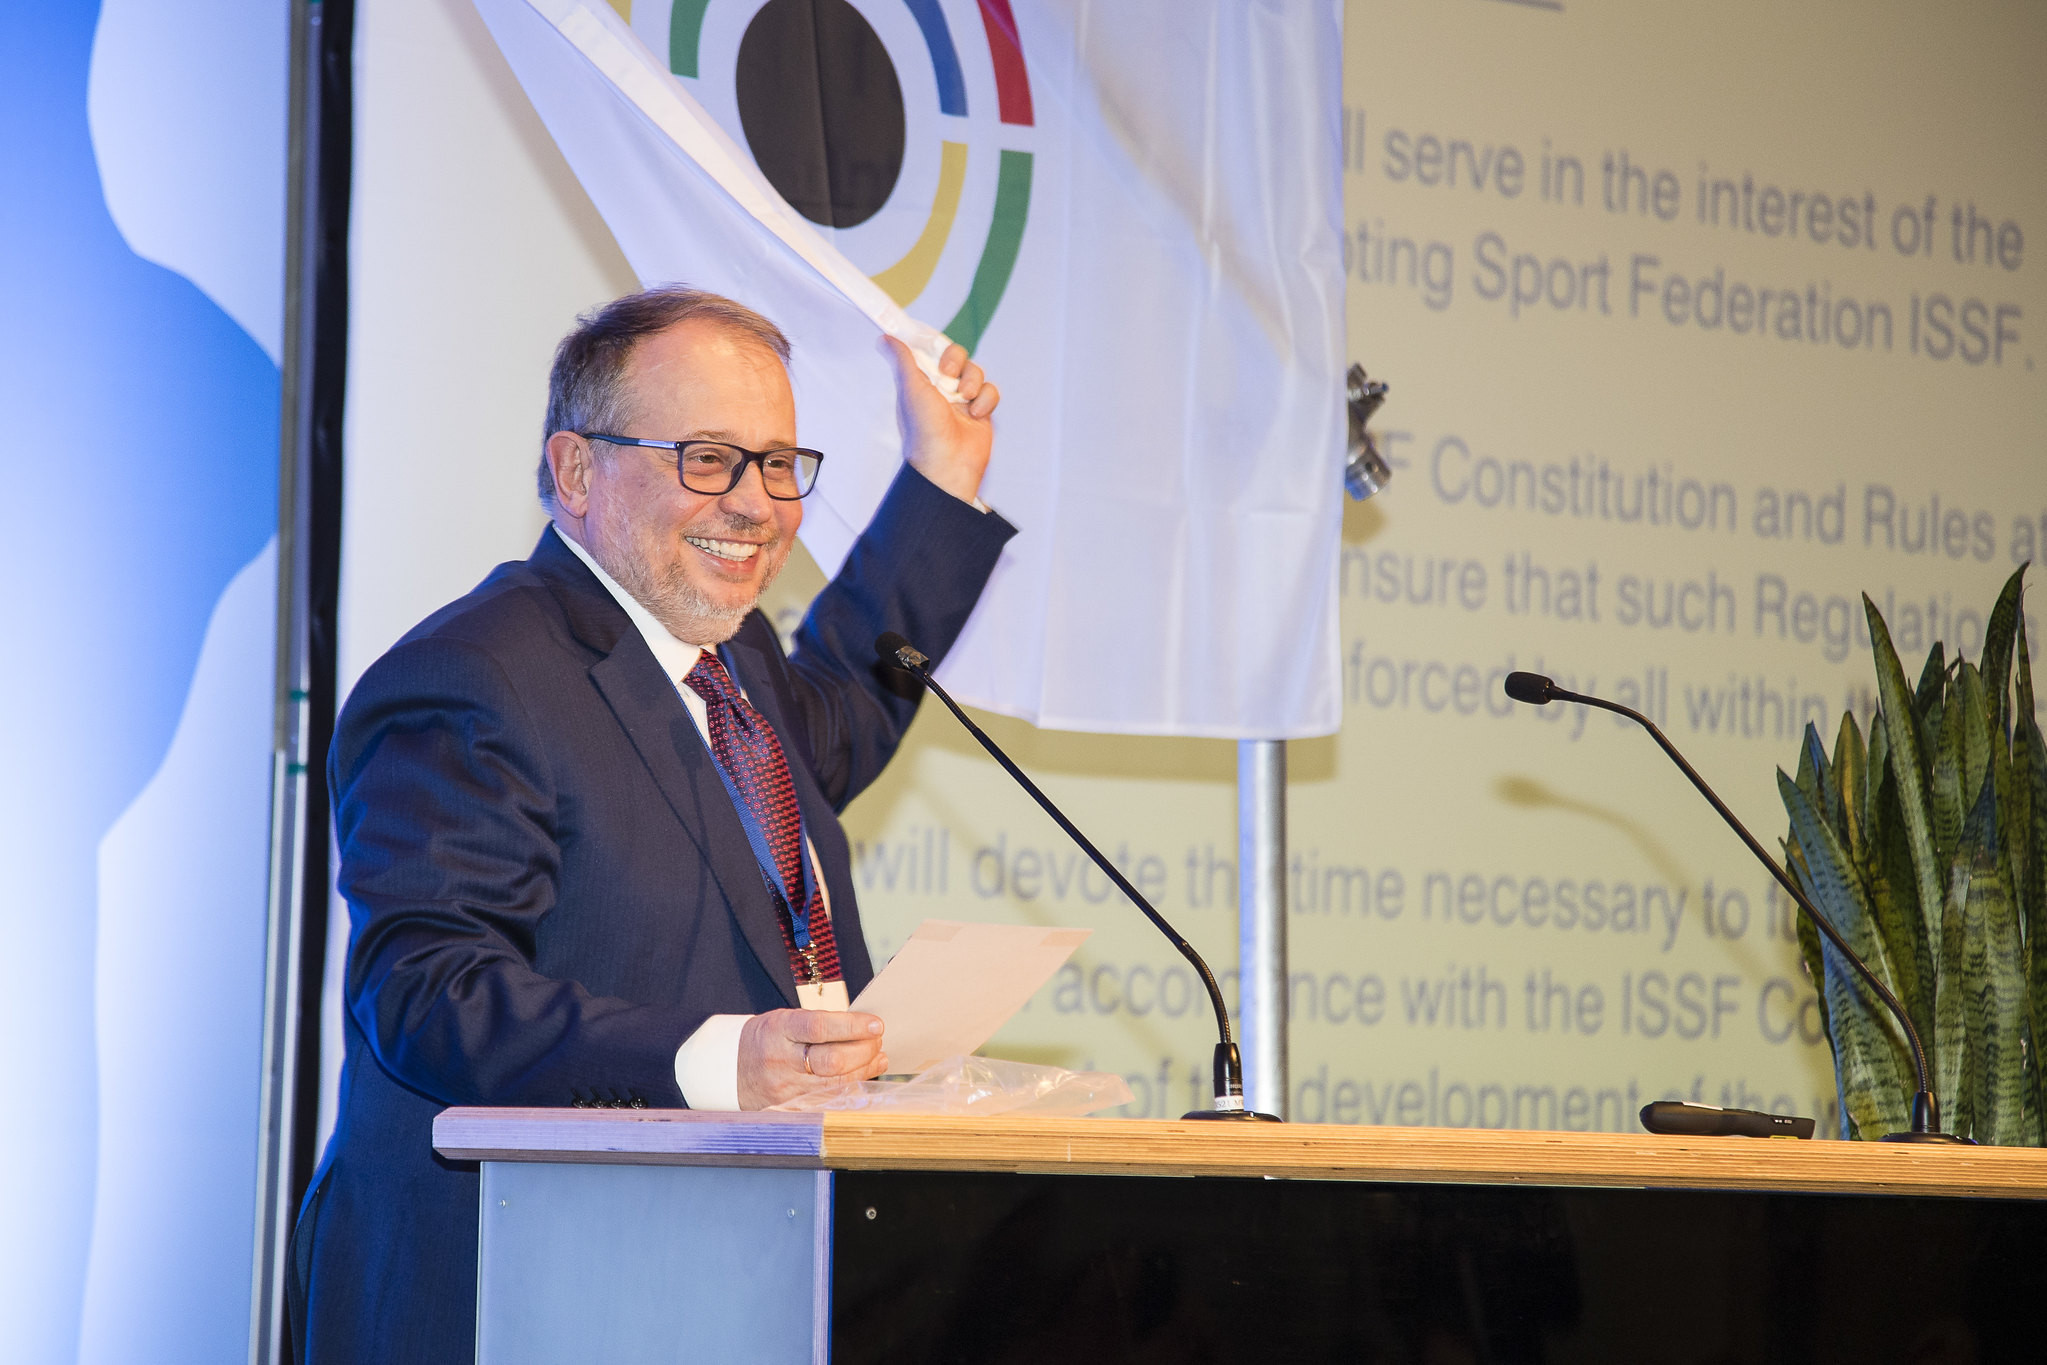 Billionaire Vladimir Lisin had led the Russian Shooting Union since 2002 but has stepped down to concentrate on heading the International Shooting Federation ©ESC